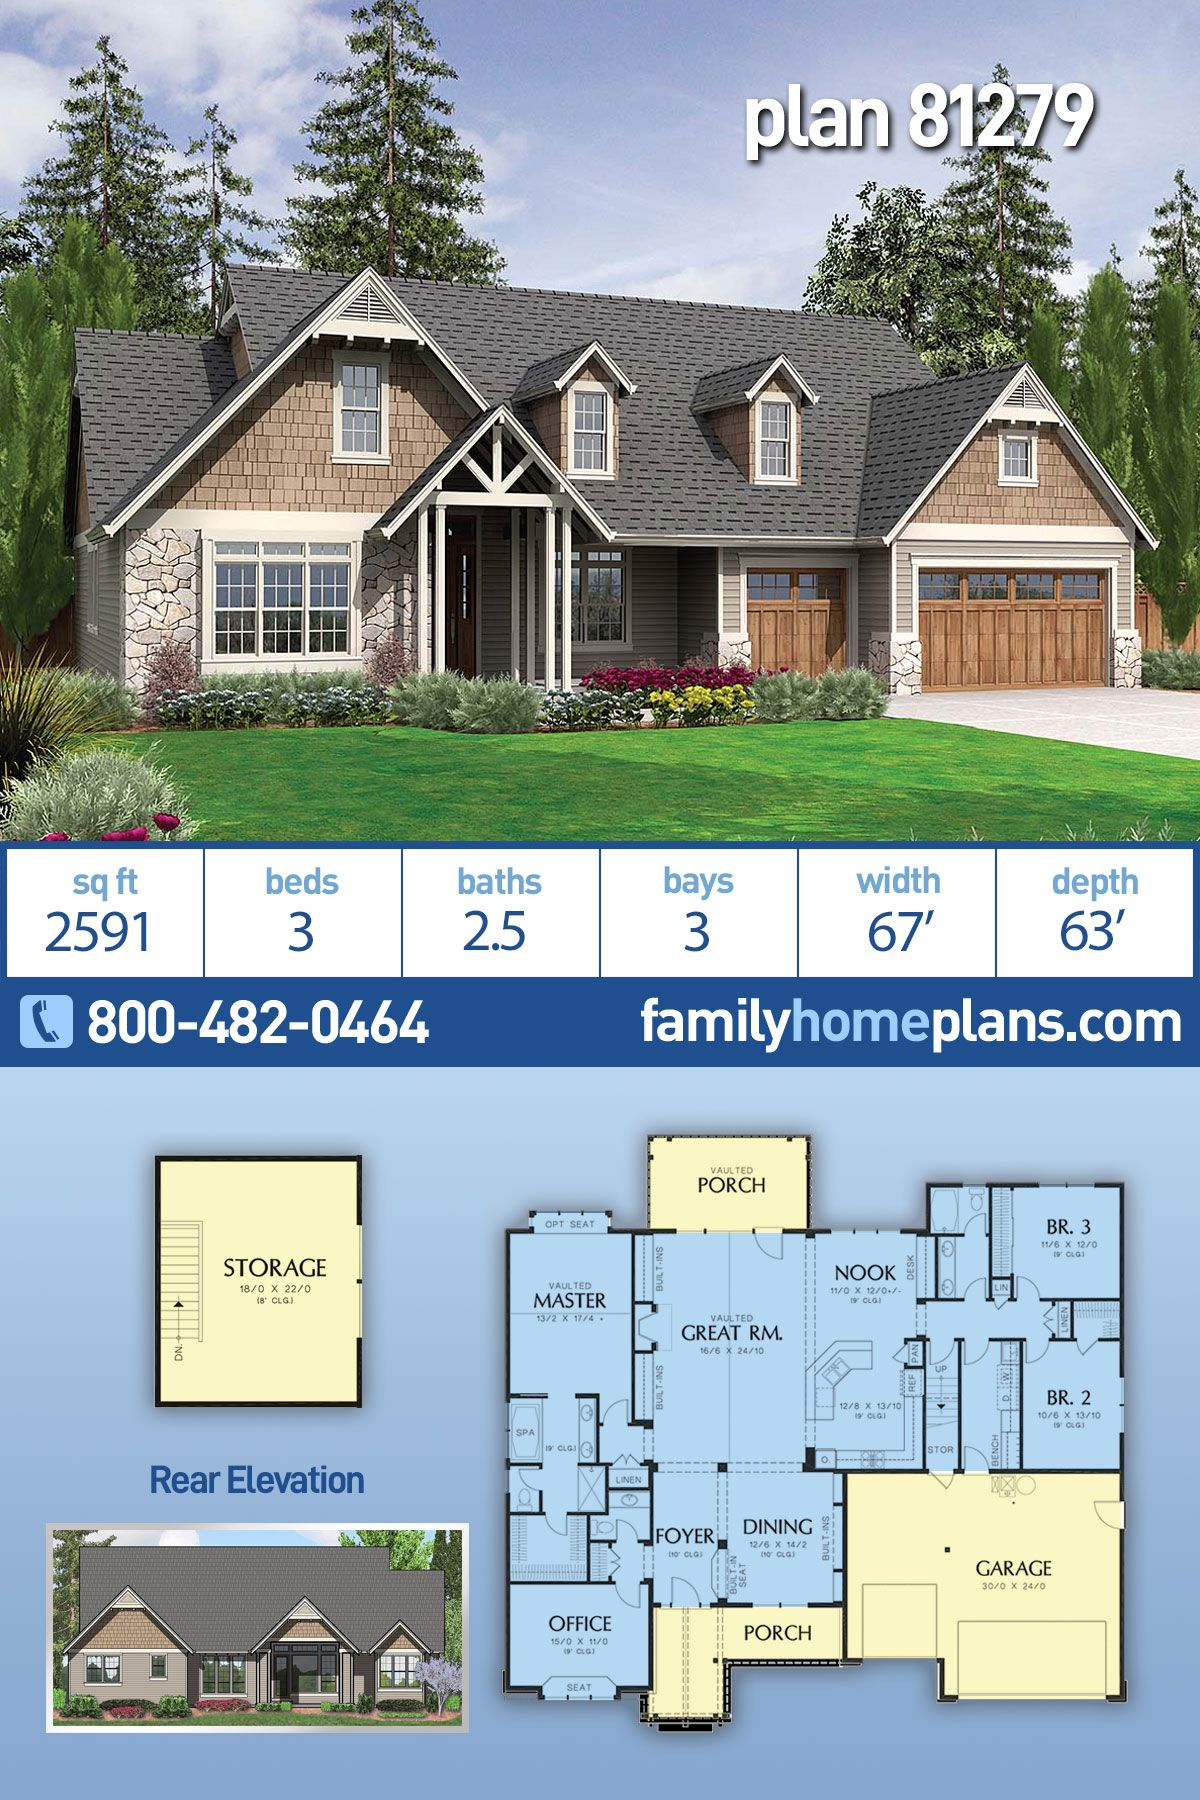 Ranch Style House Plan 81279 With 3 Bed 3 Bath 3 Car Garage Craftsman House Plans Ranch Style House Plans Bungalow House Plans